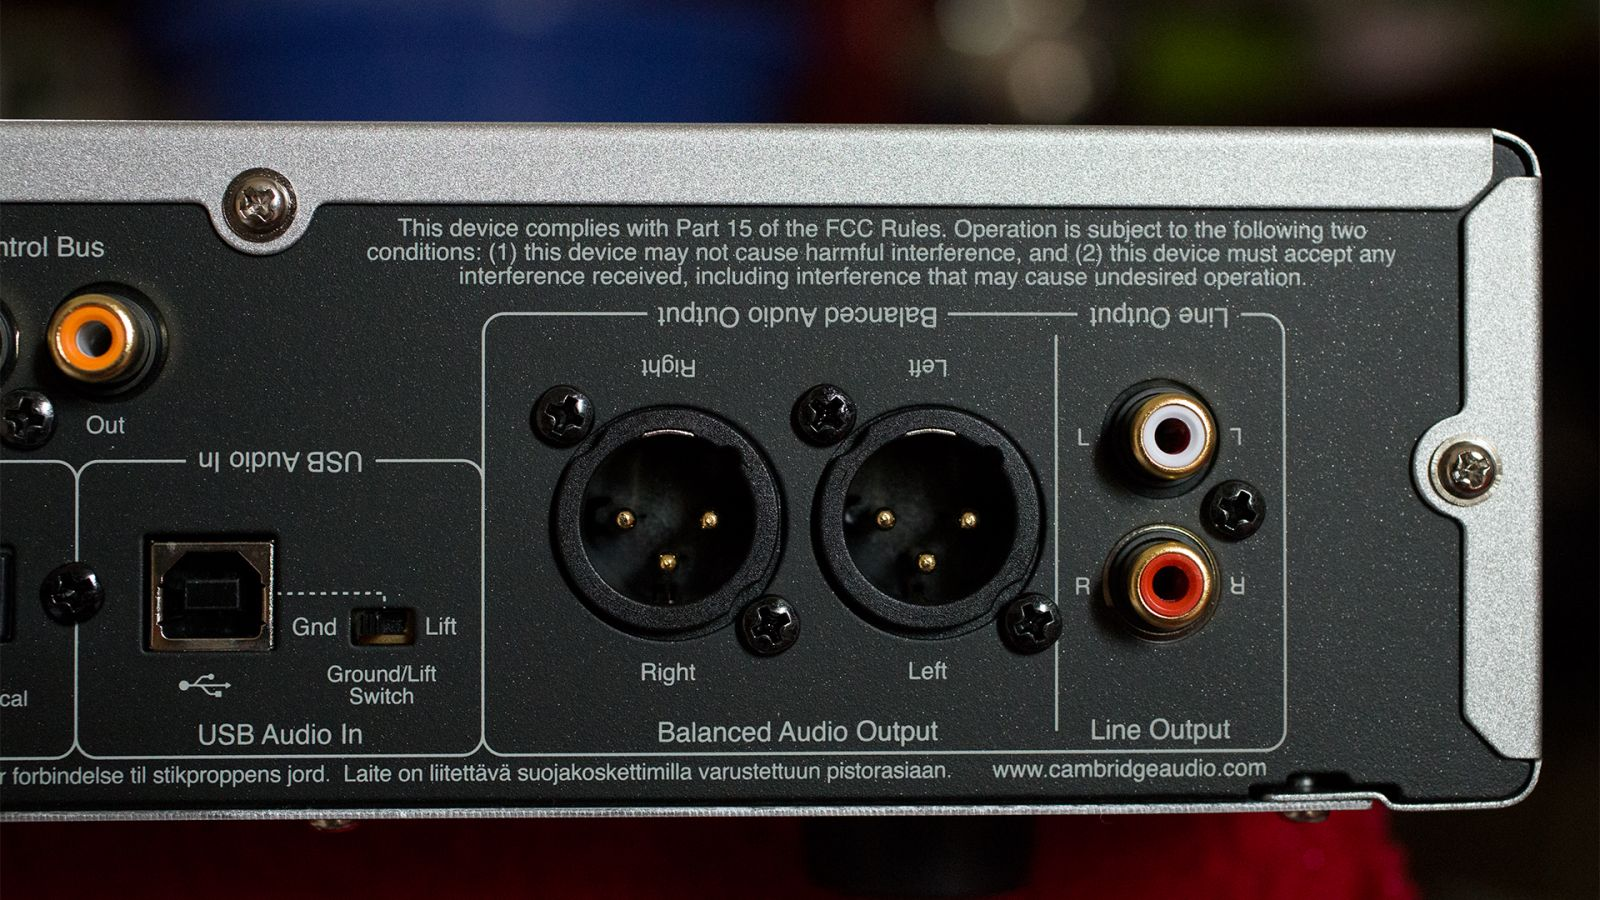 cambridge audio cxn v2 back